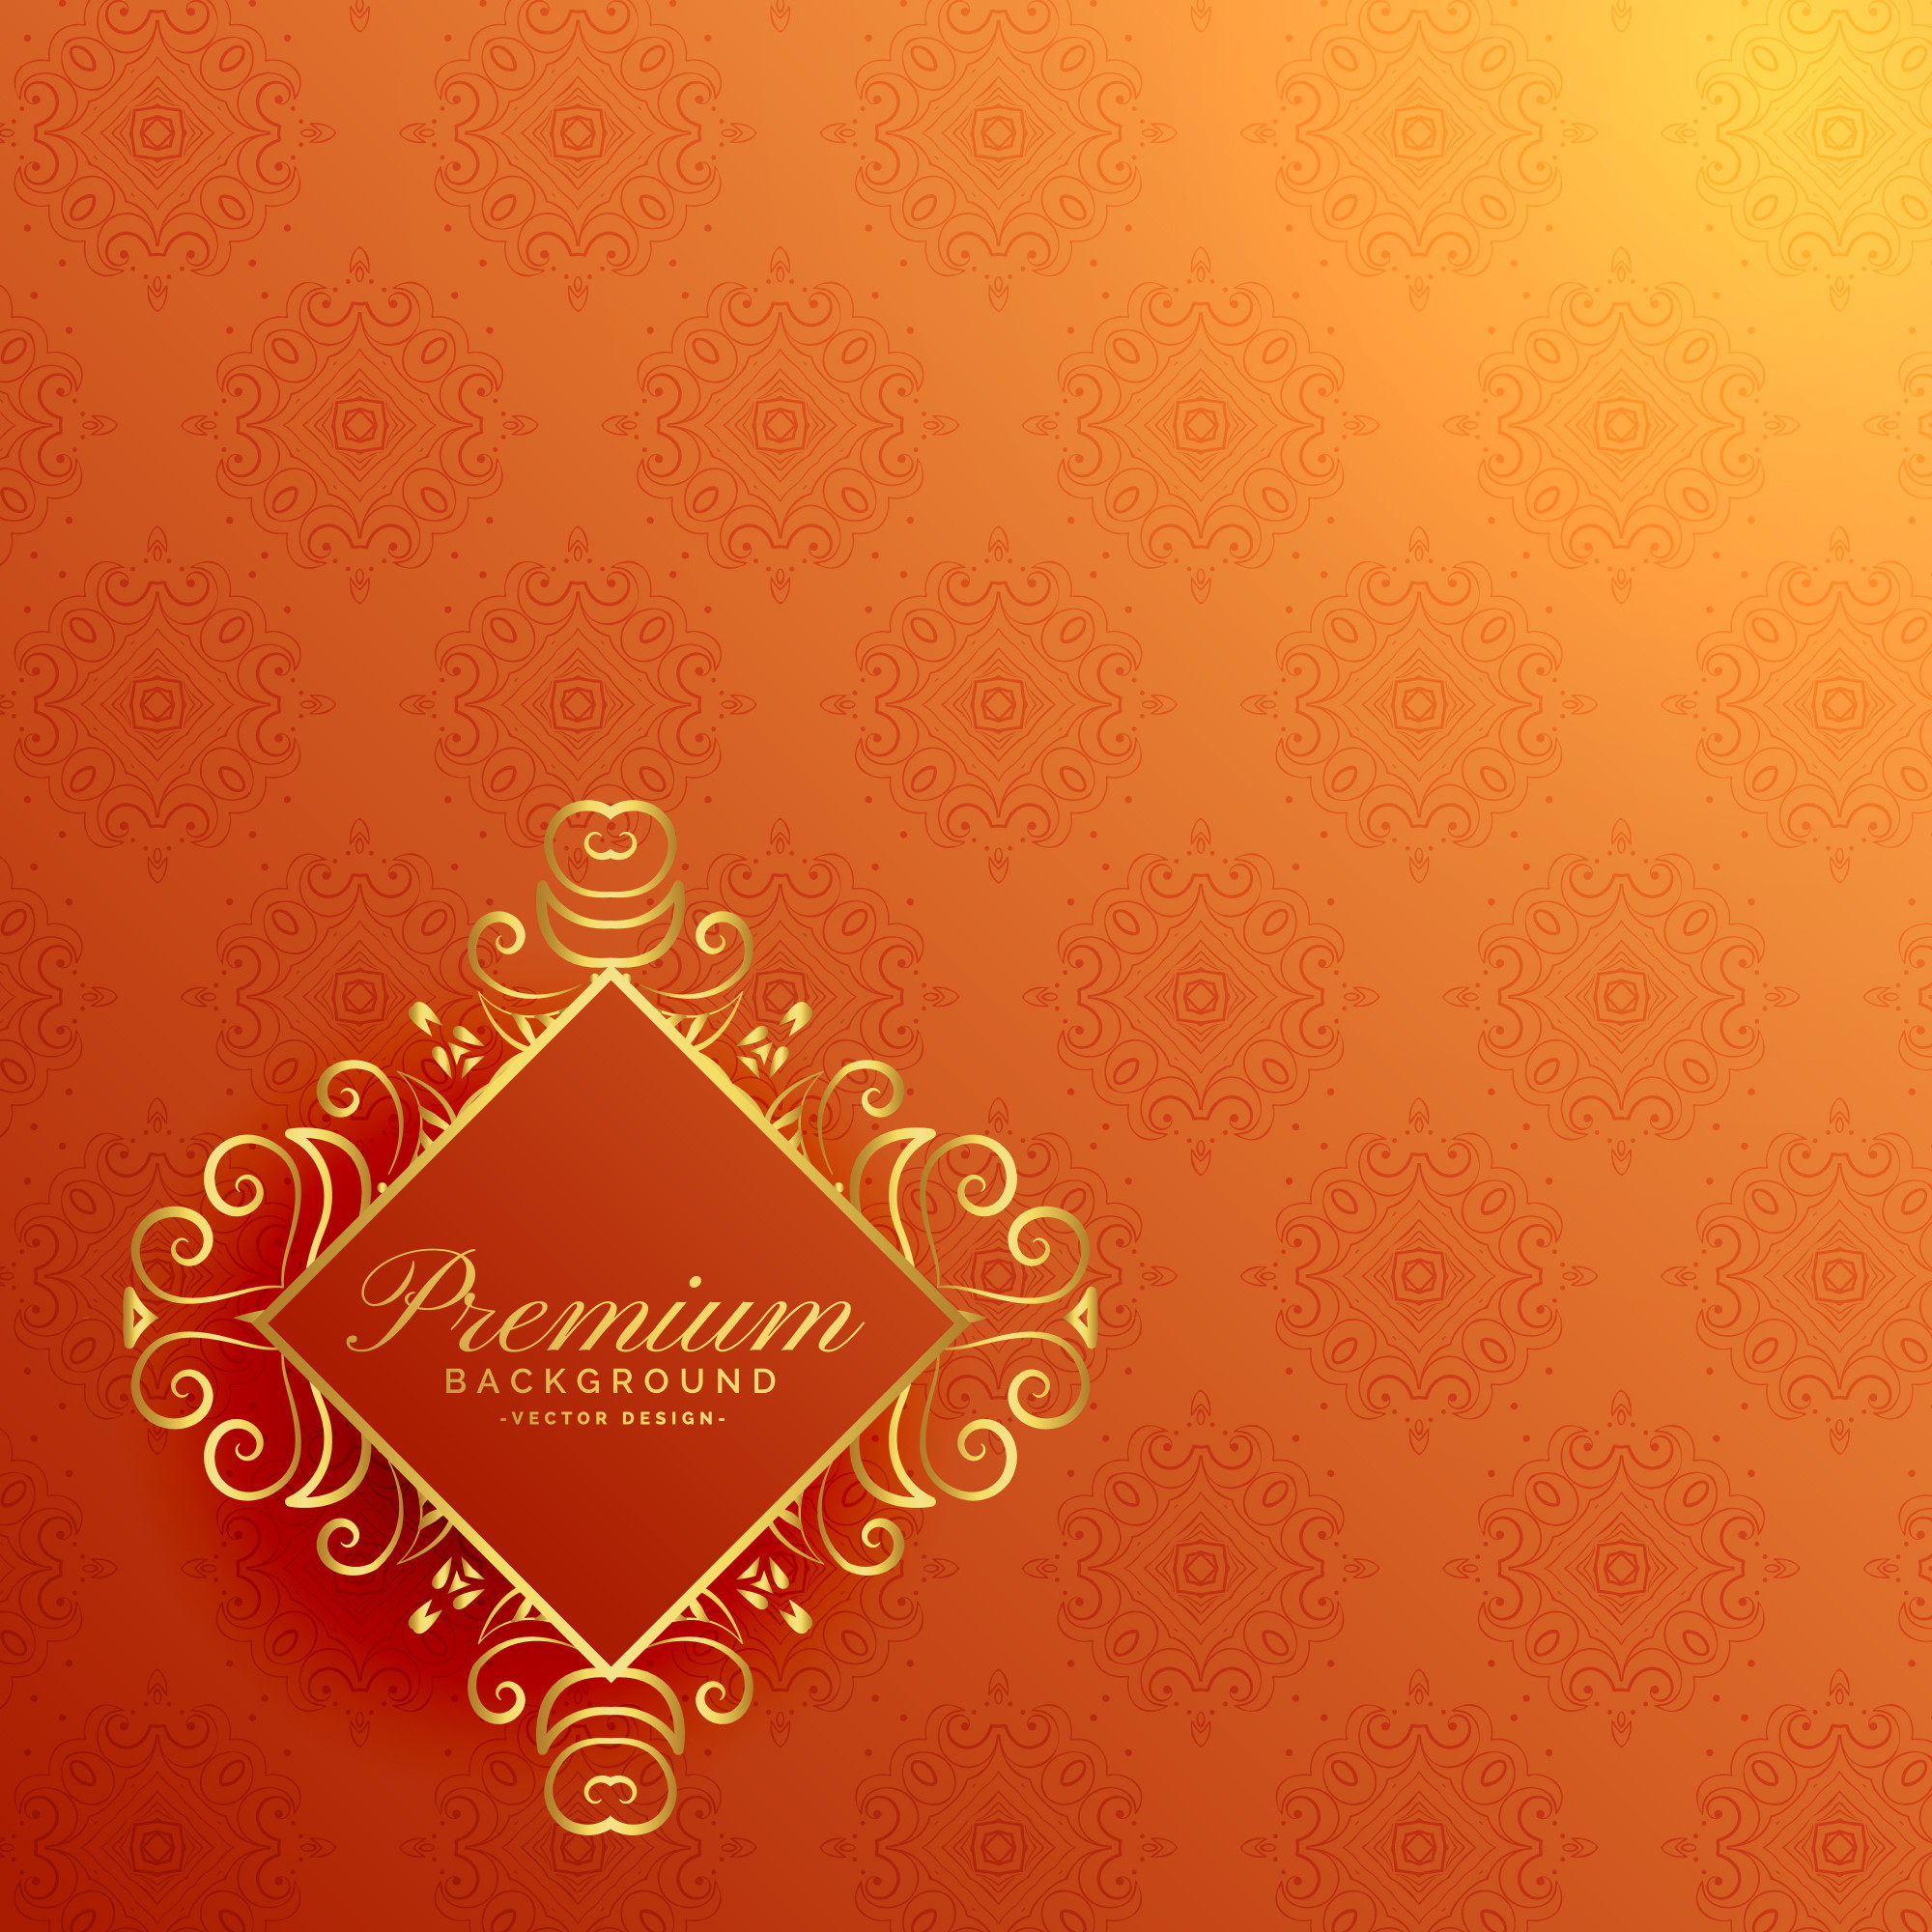 Stylish orange golden invitation background